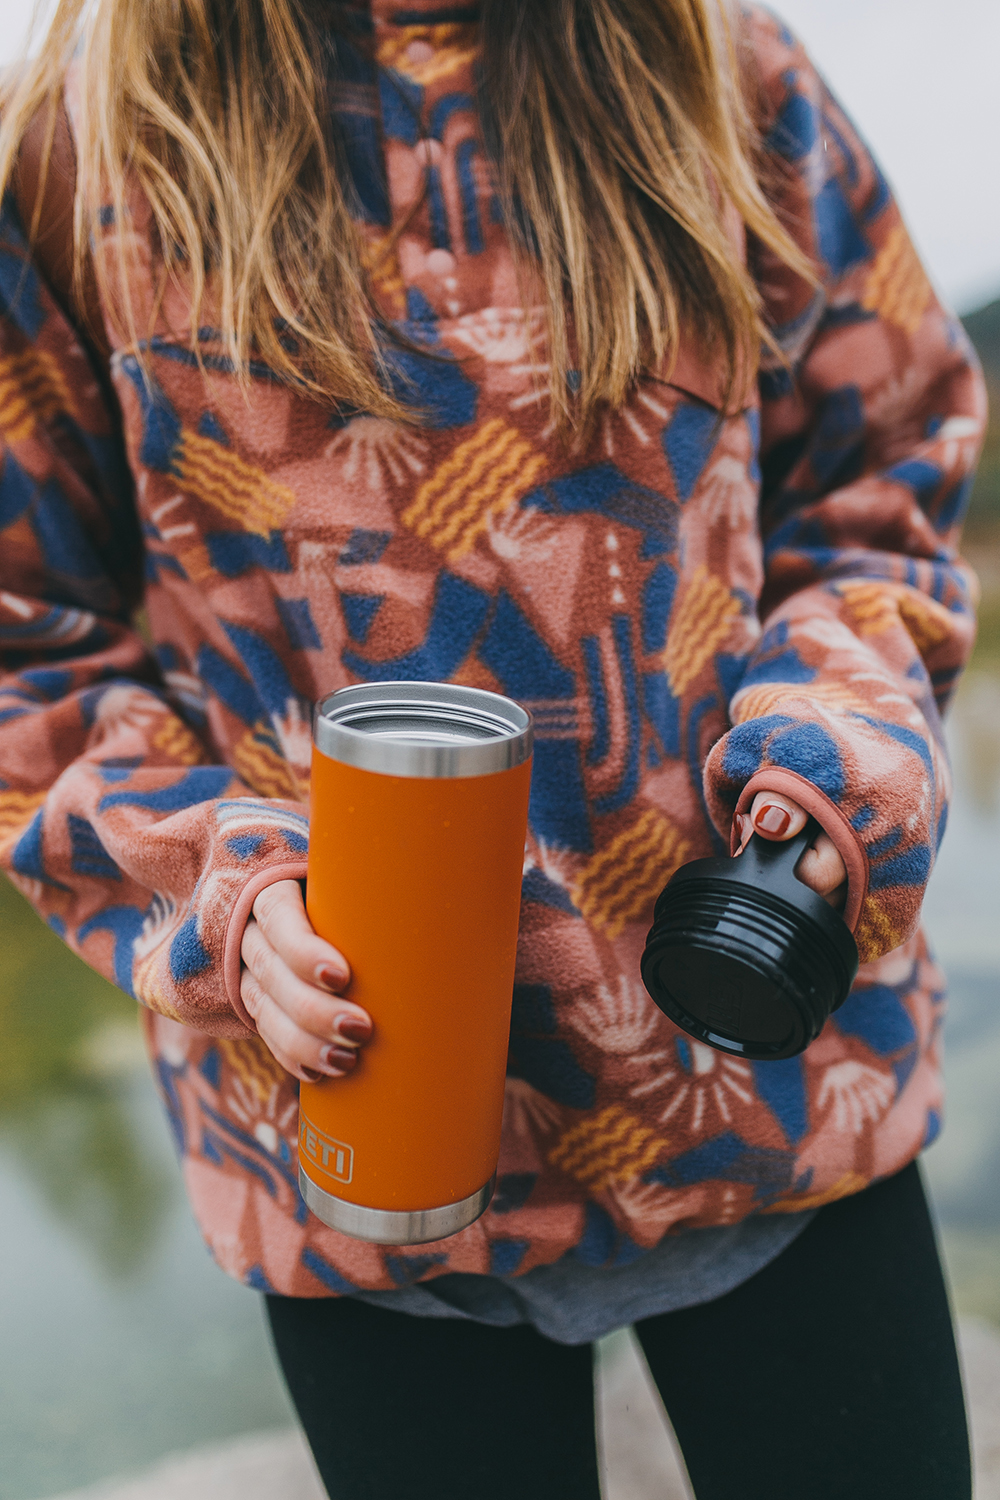 livvyland-blog-olivia-watson-austin-texas-barton-creek-greenbelt-hike-lost-creek-backcountry-patagonia-snap-fleece-pullover-yeti-19-oz-tumbler3